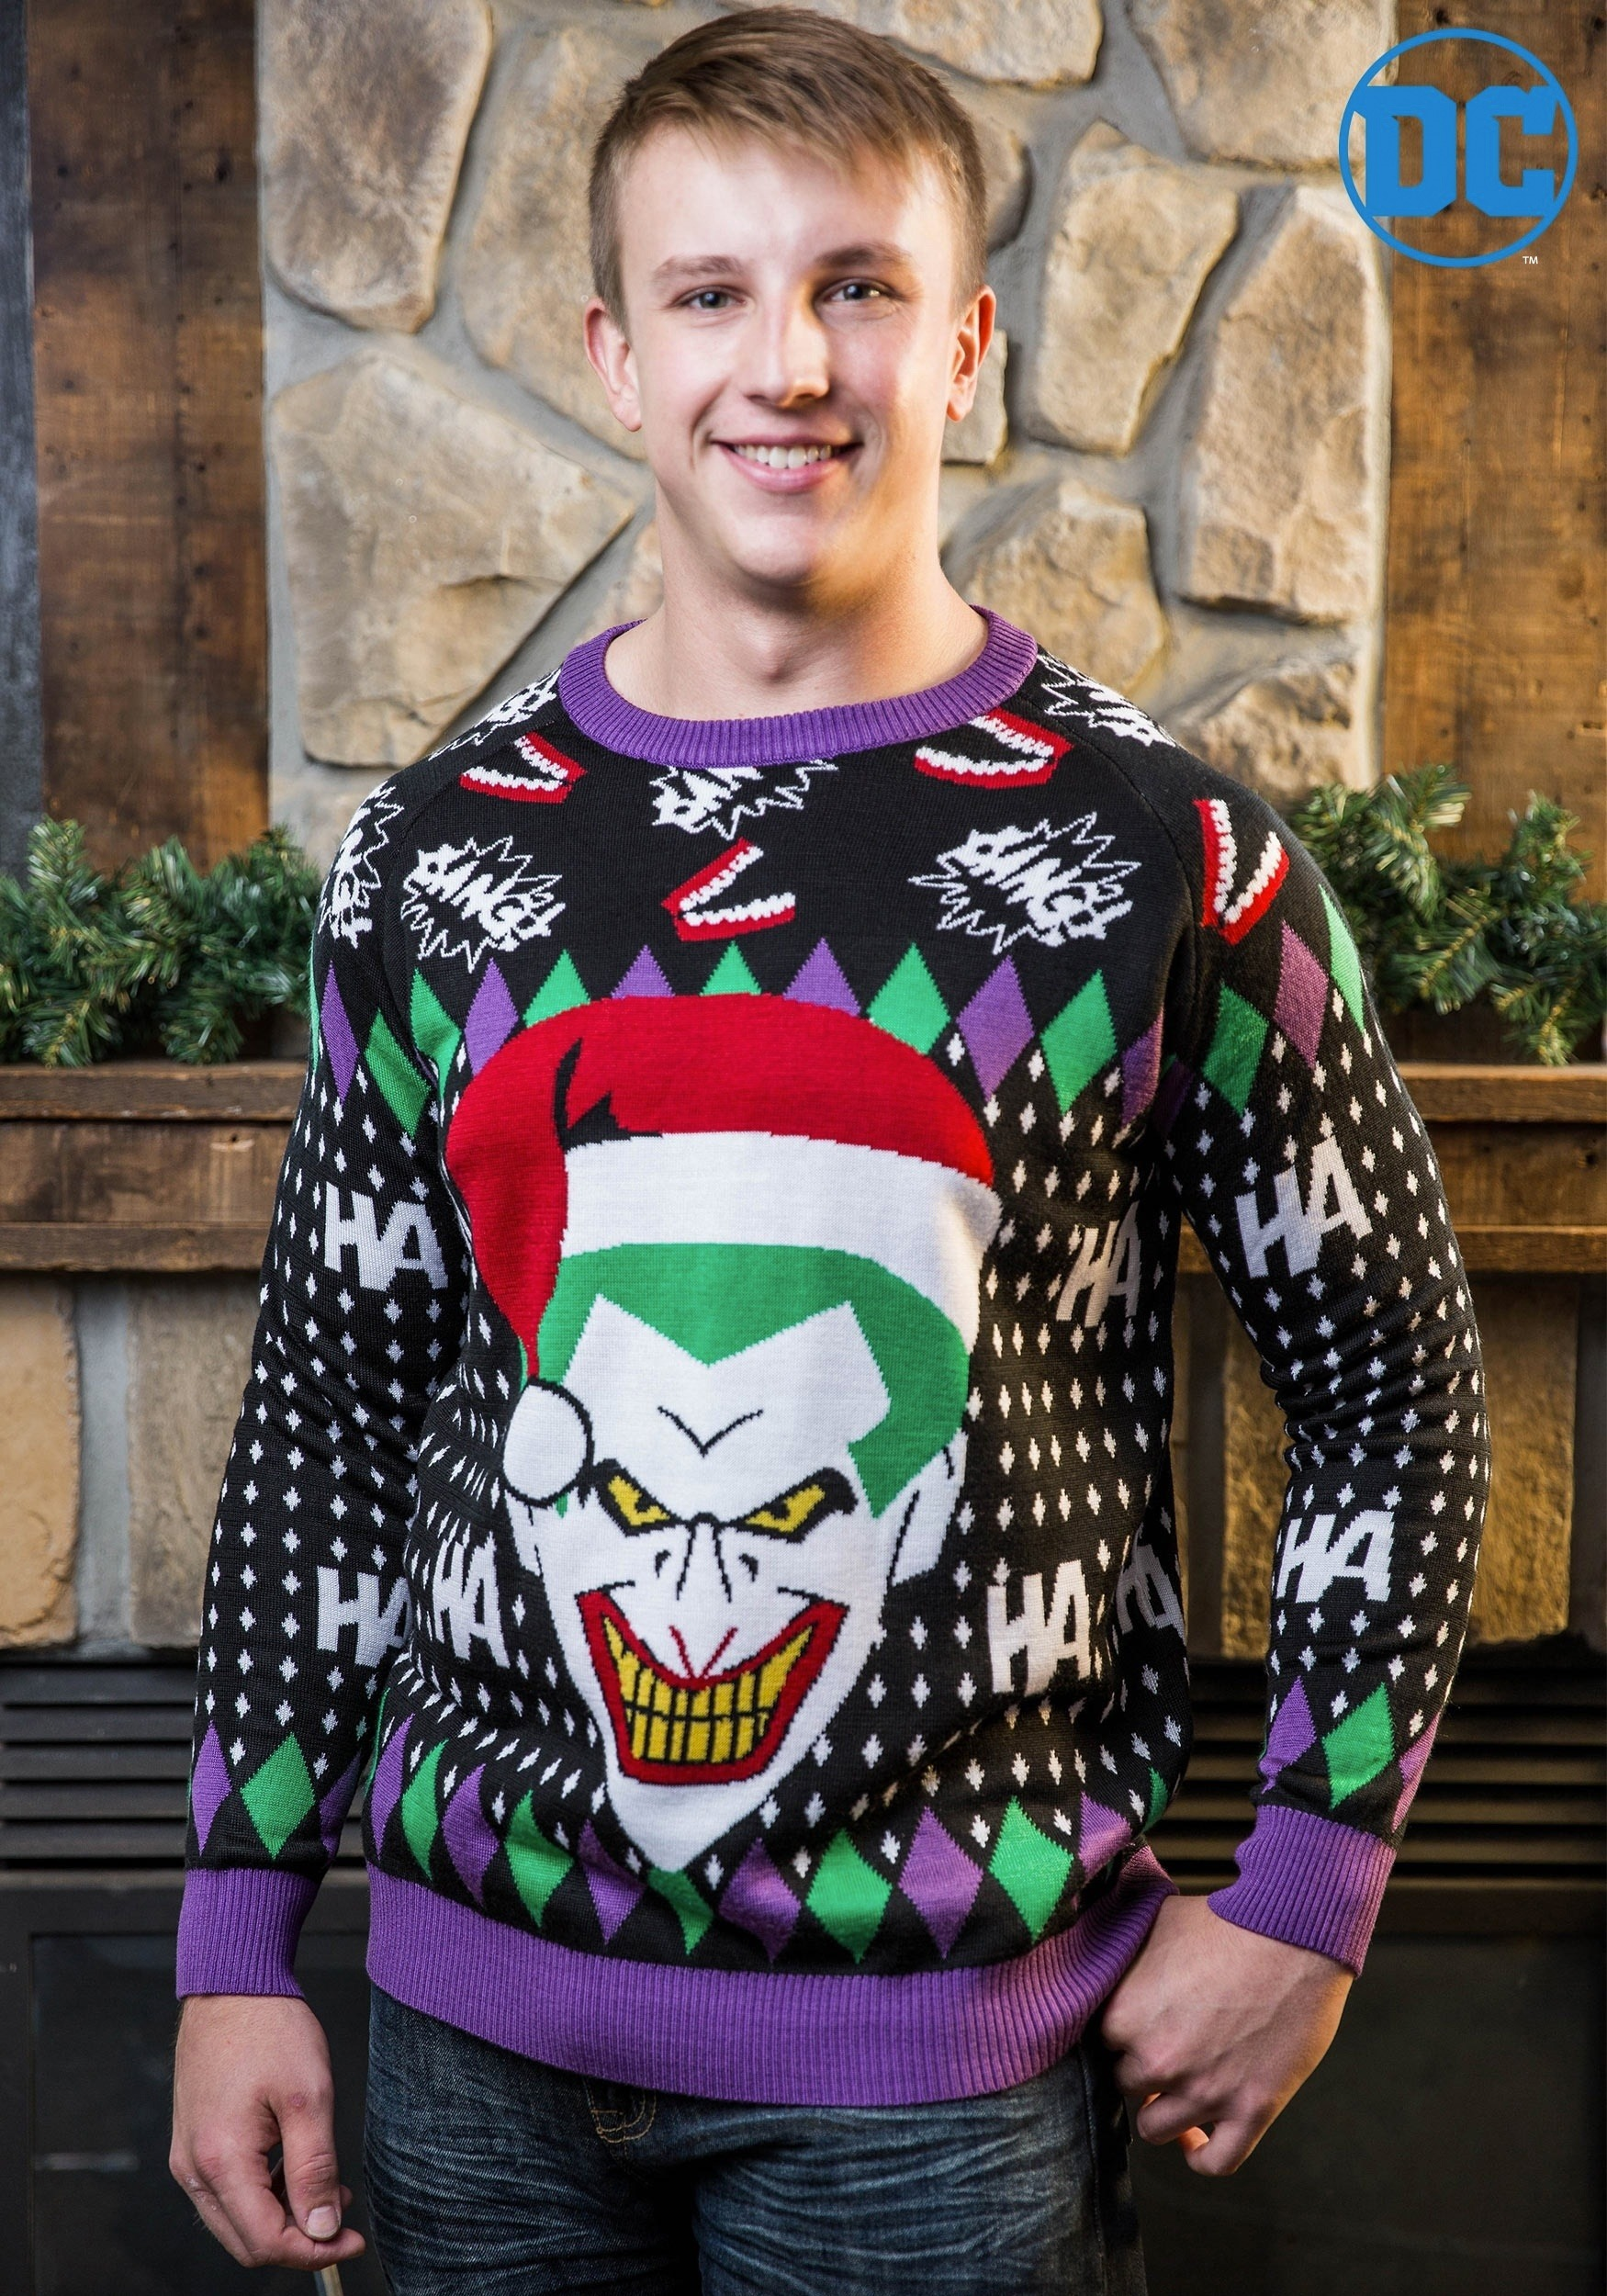 Joker Santa Ugly Christmas Sweater